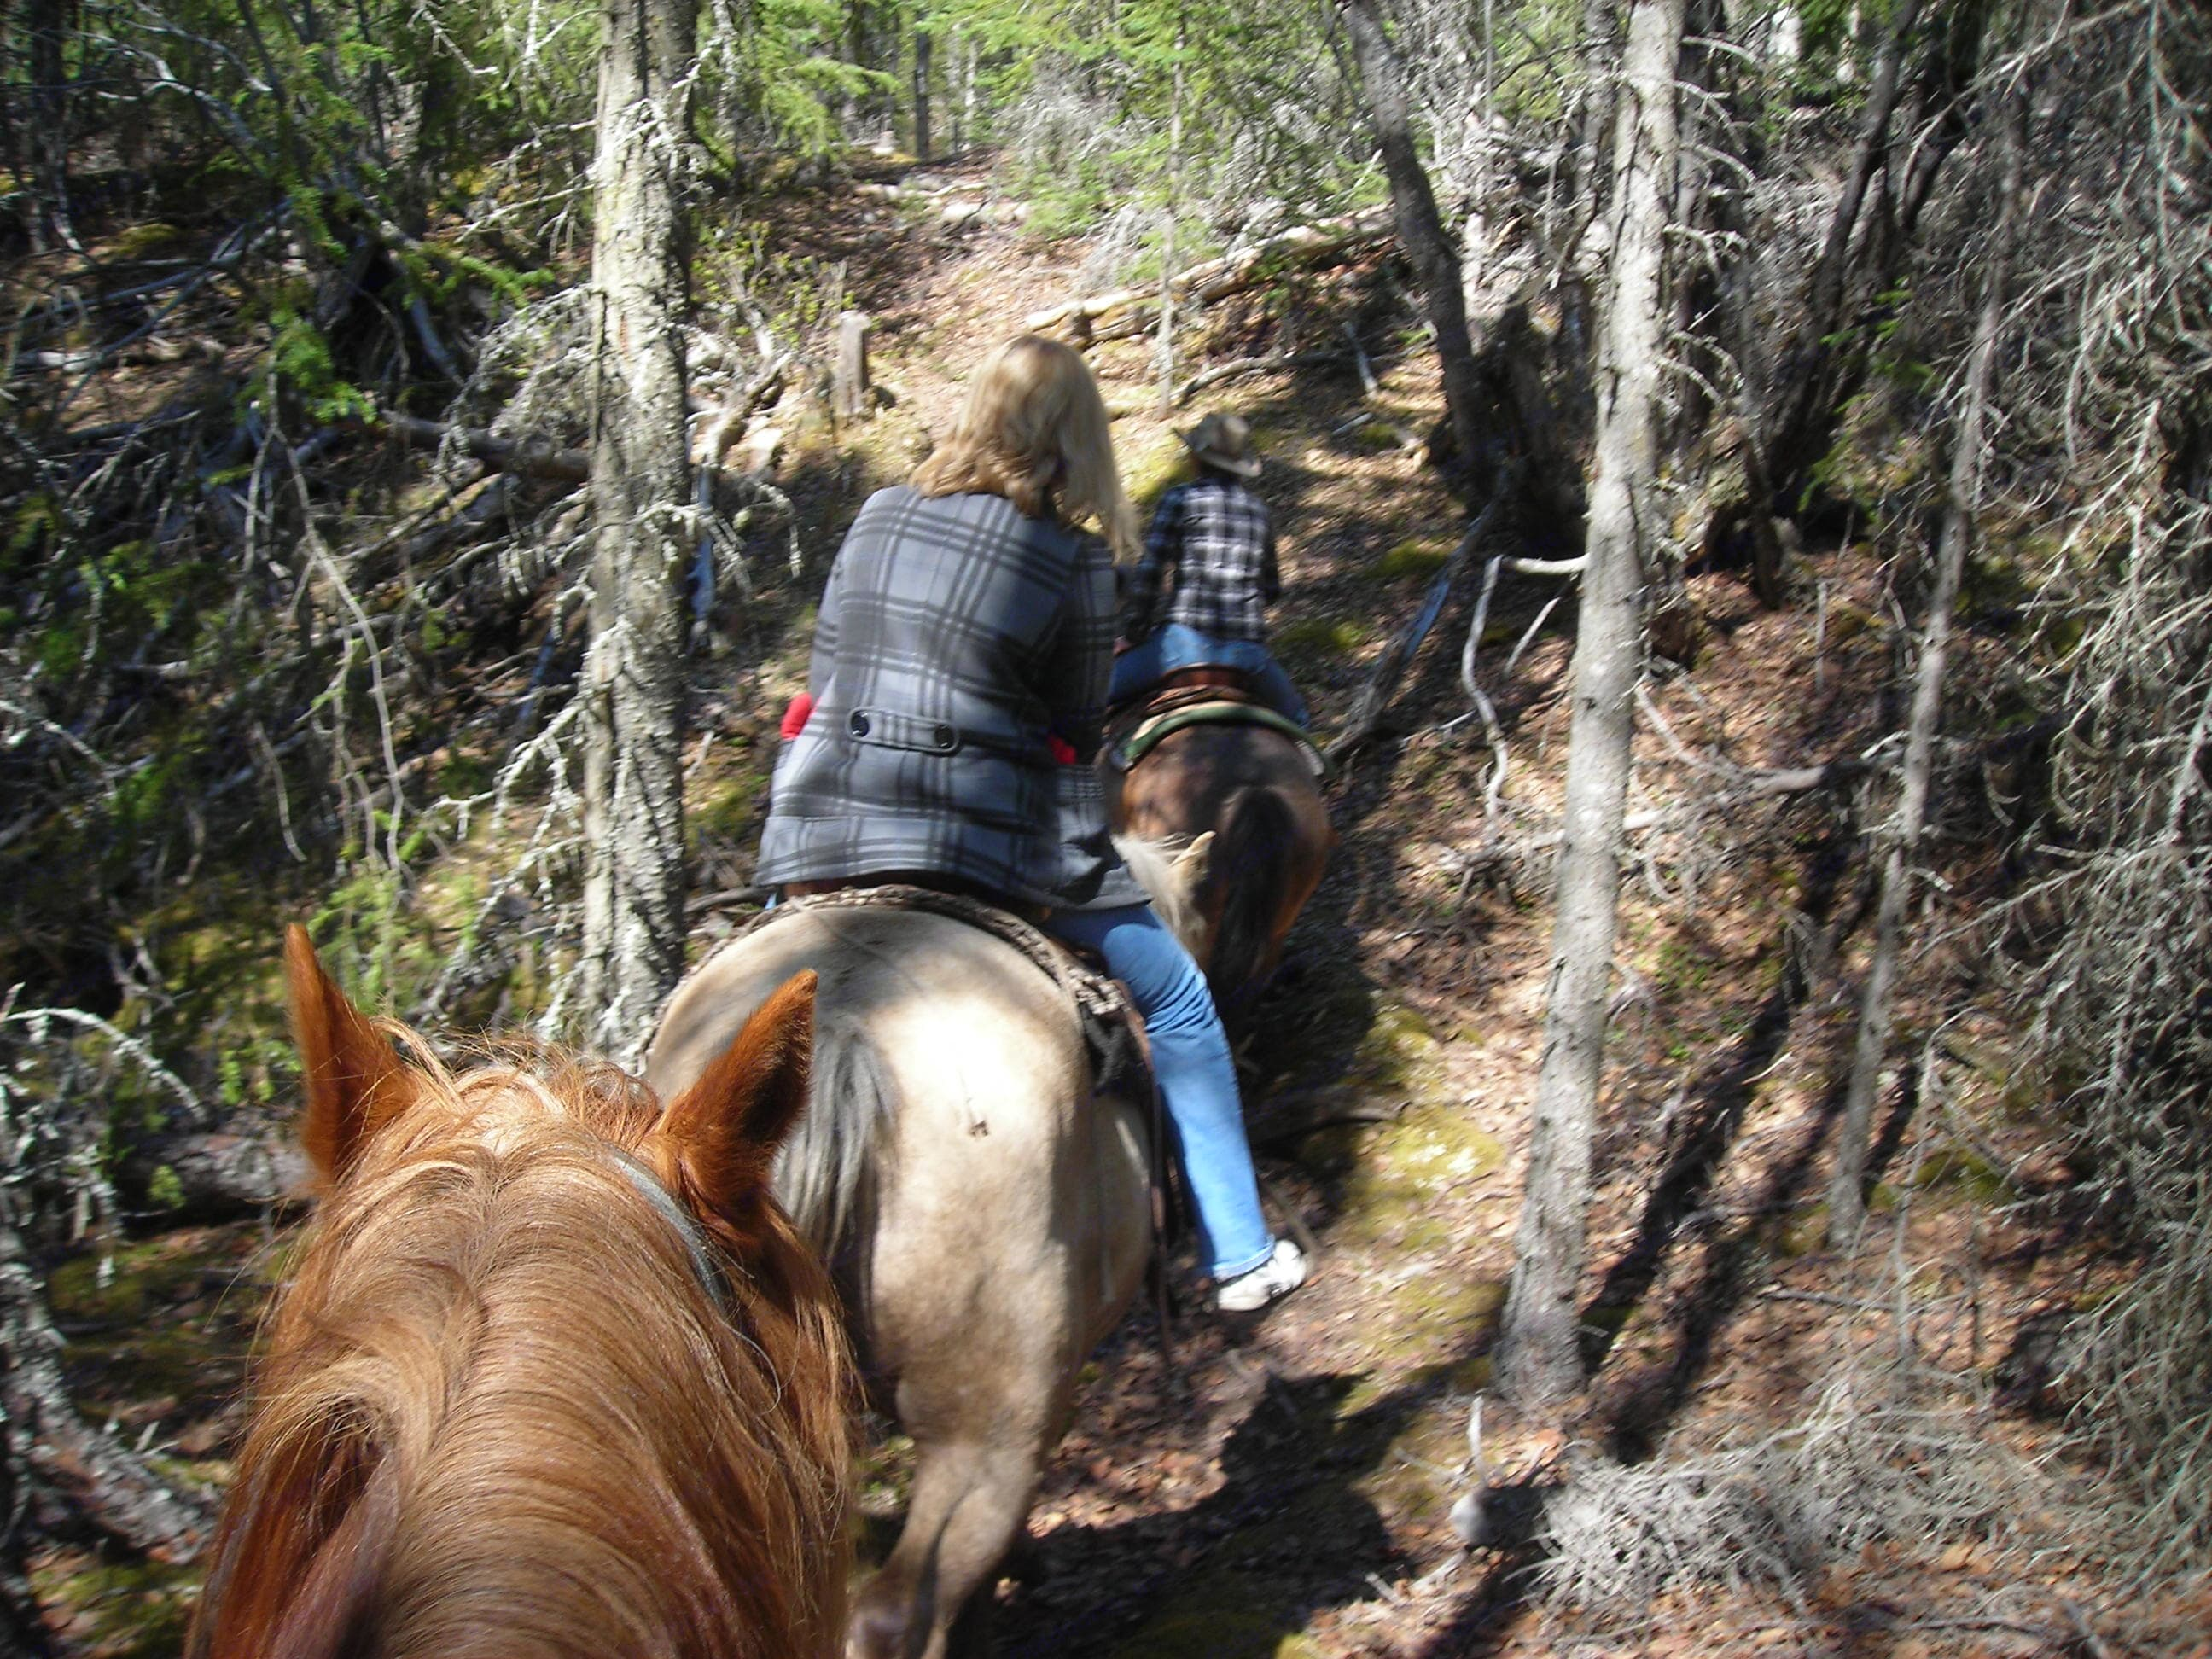 Horse back riding through the country side.. Georgie Boy Cruise Master 35foot 1998